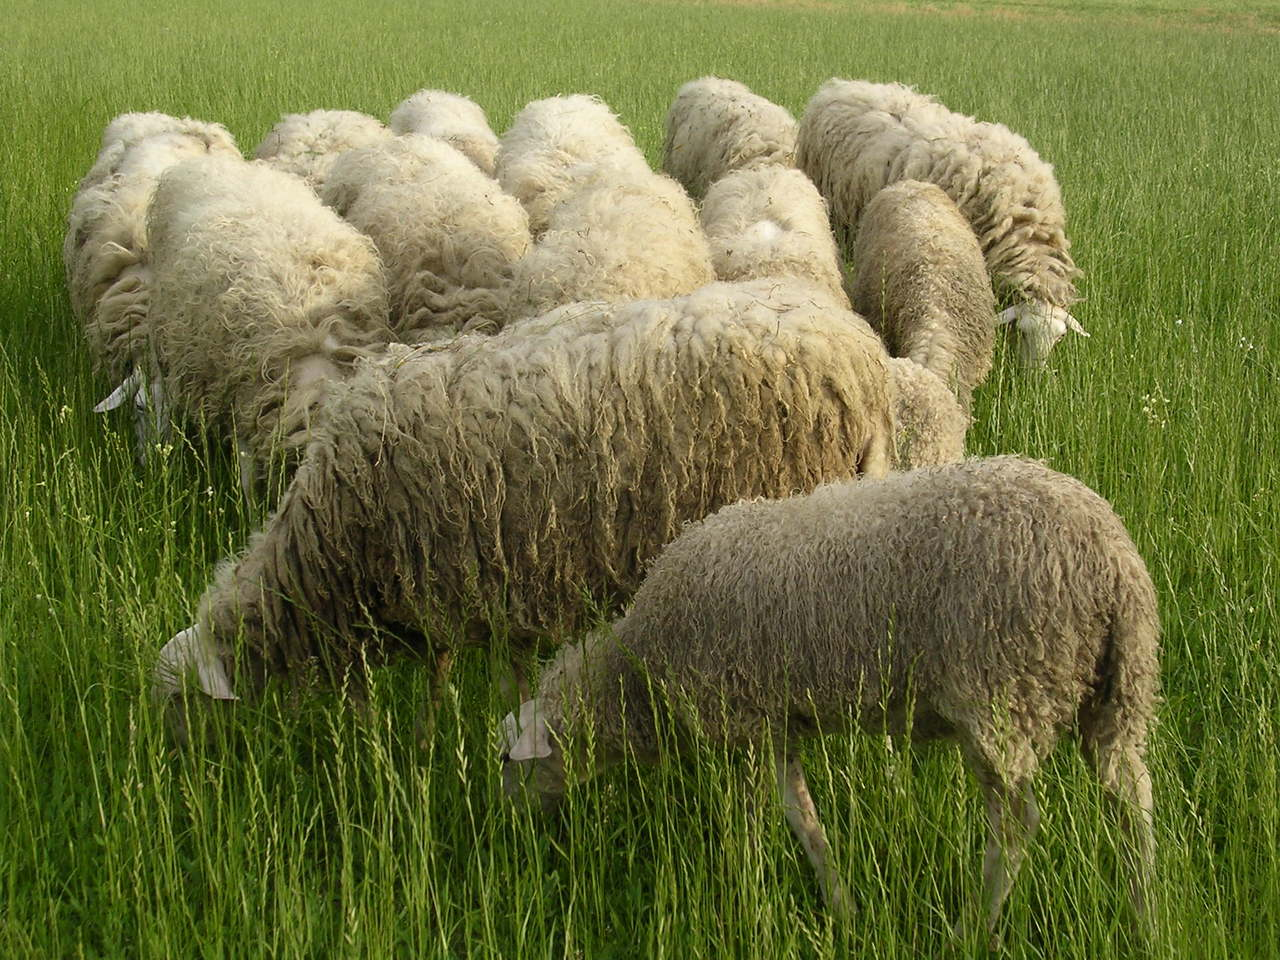 sheeps-group-1494240-1280x960